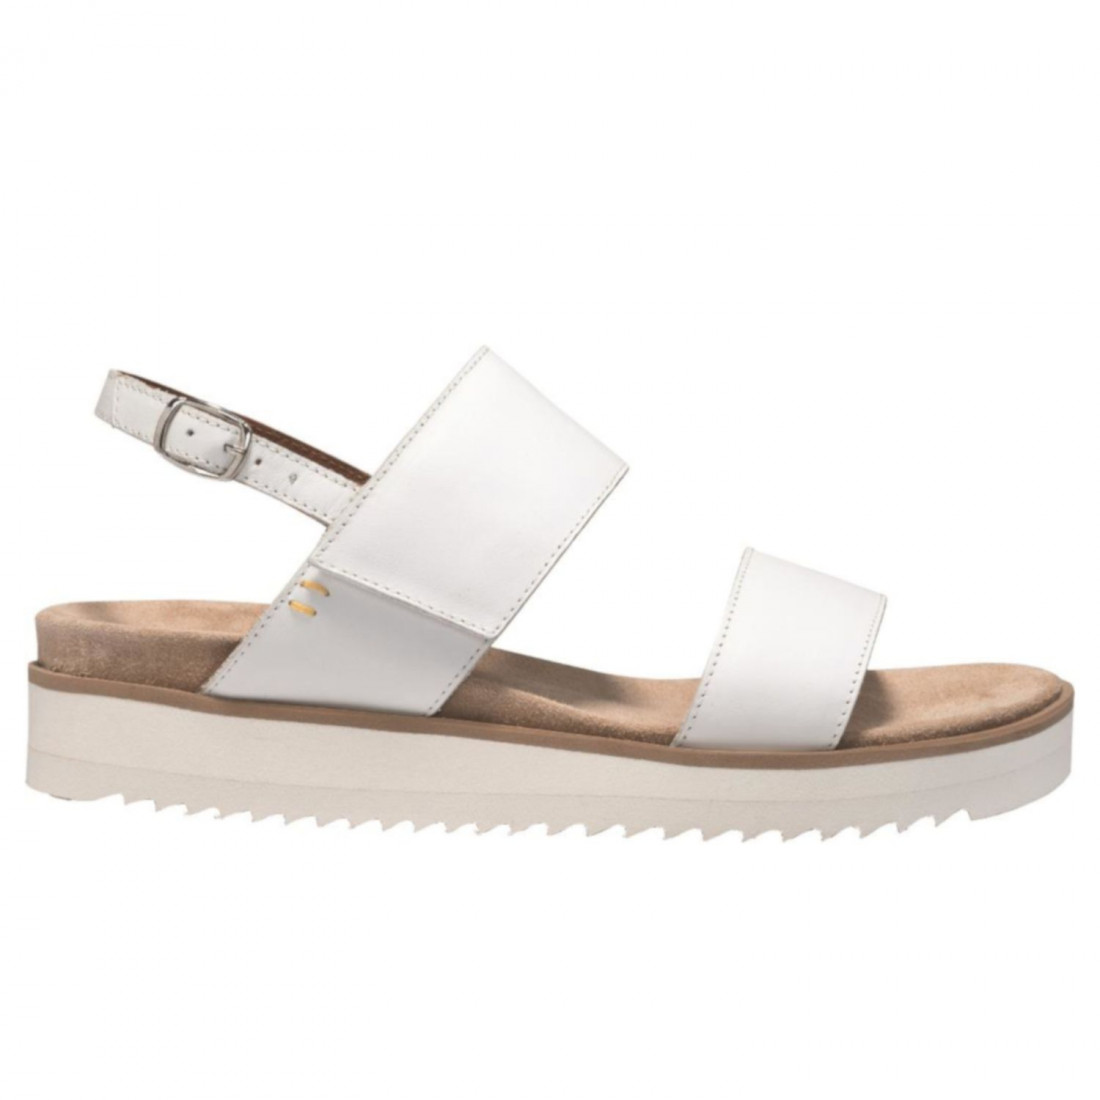 sandals woman benvado lilly360021400 7165